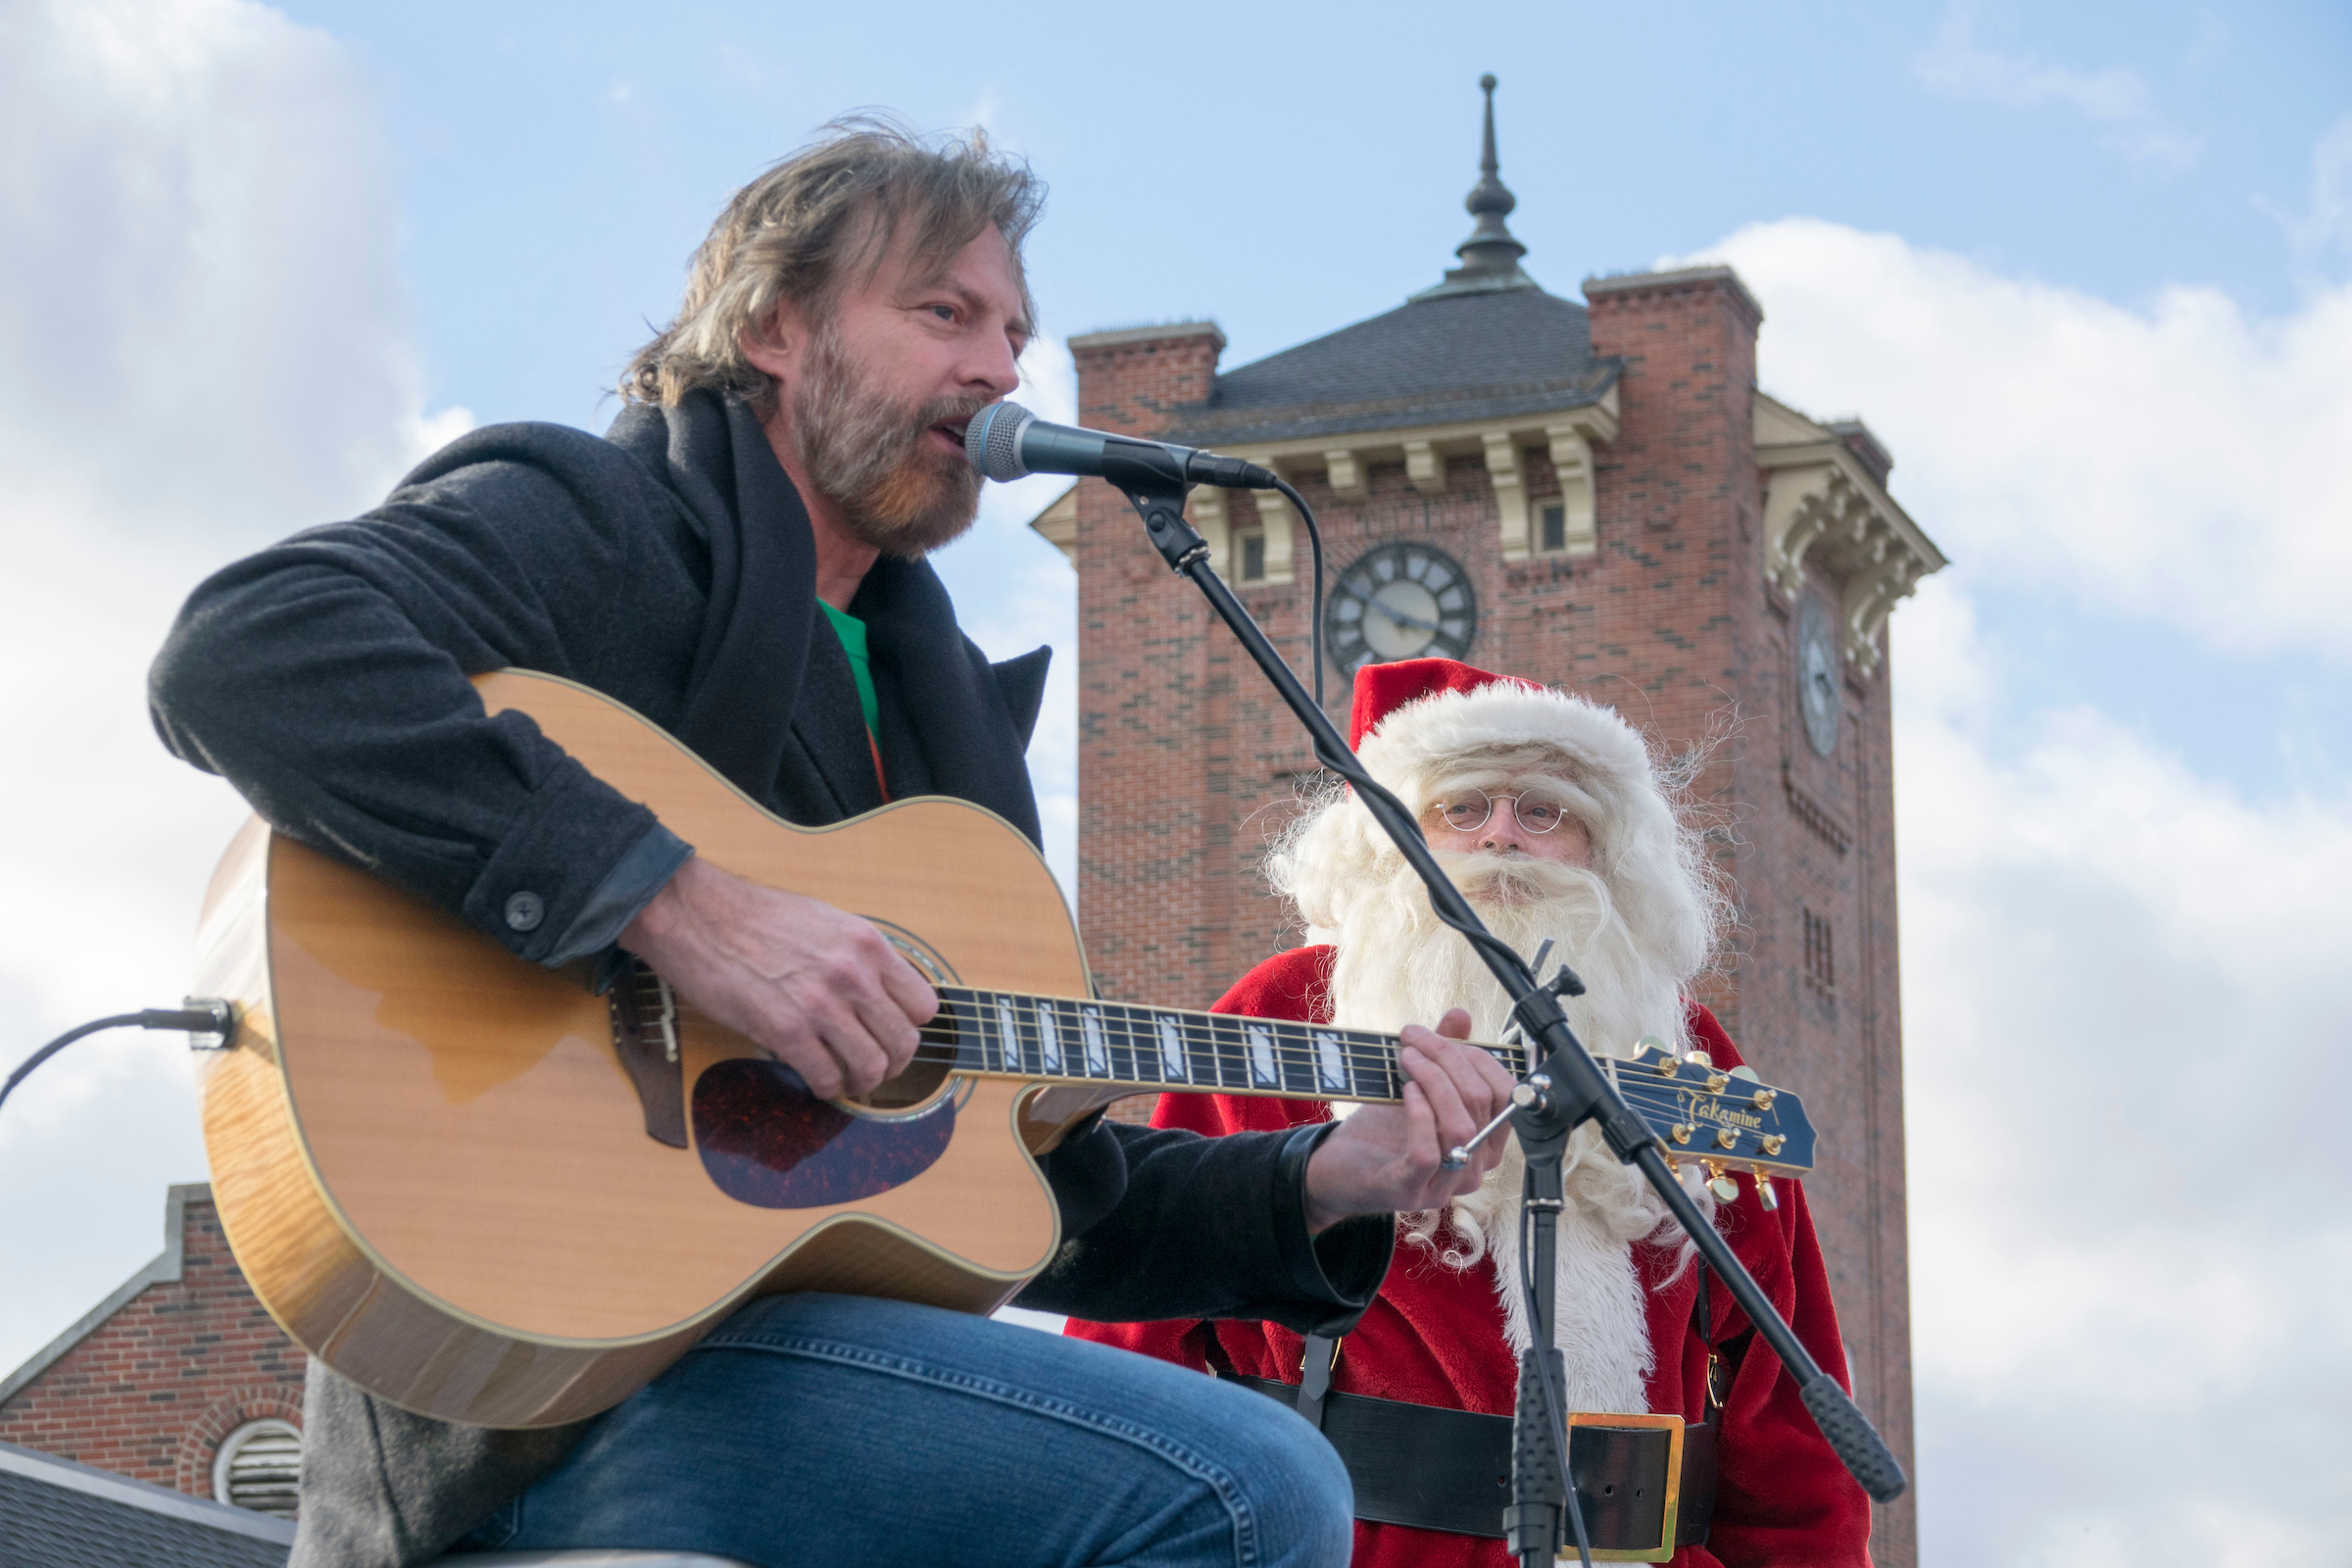 Darryl Worley on the Santa Train, Photo by Ed Rode